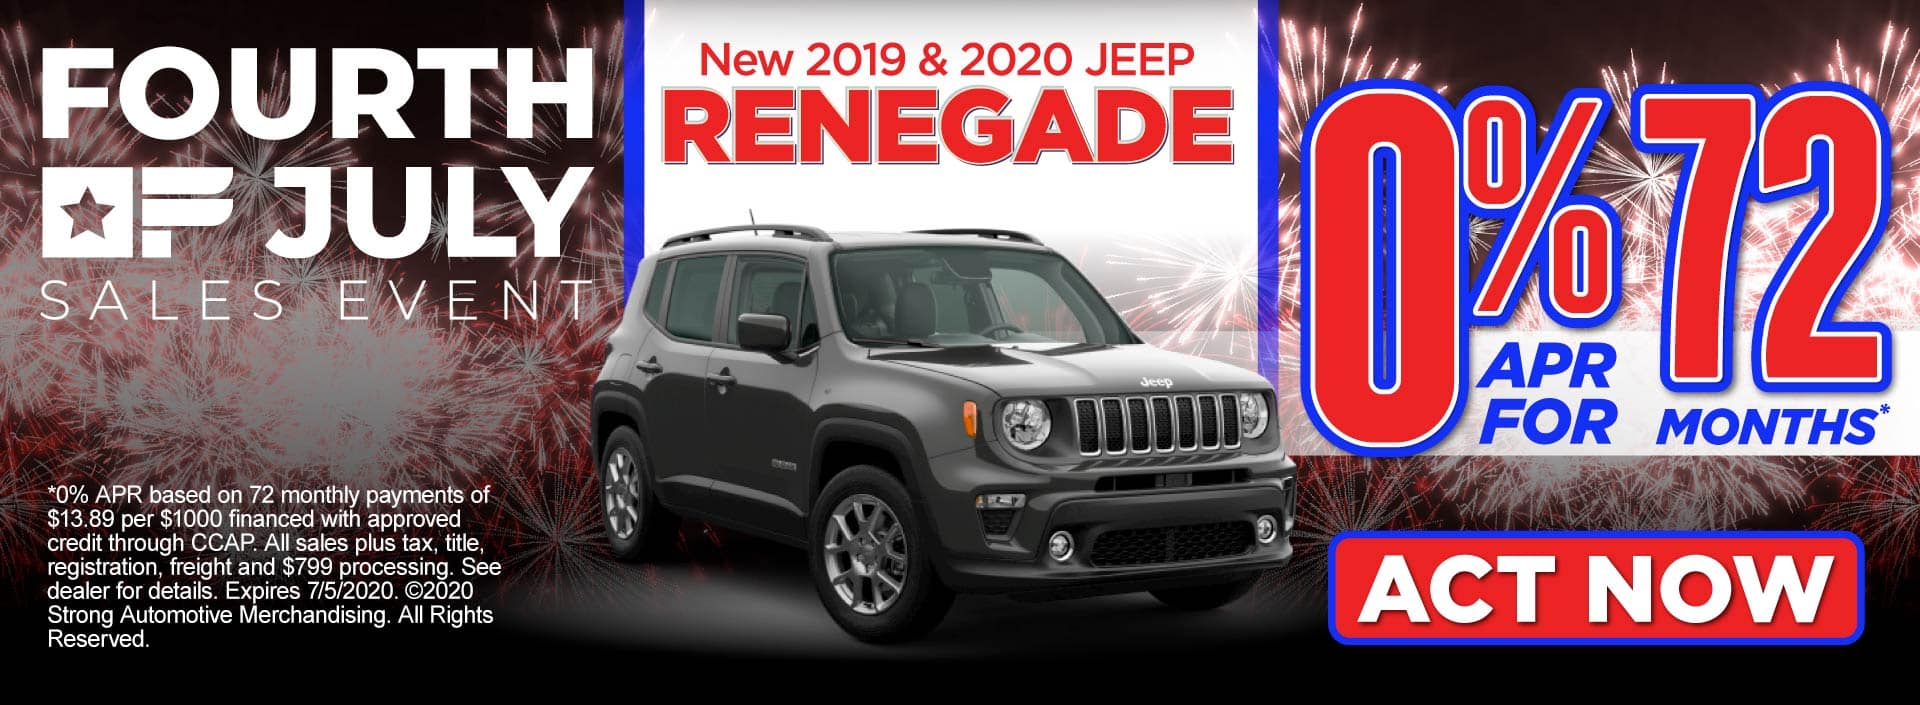 New 2019 & 2020 Jeep Renegade 0% APR for 72 Mos. - Act Now